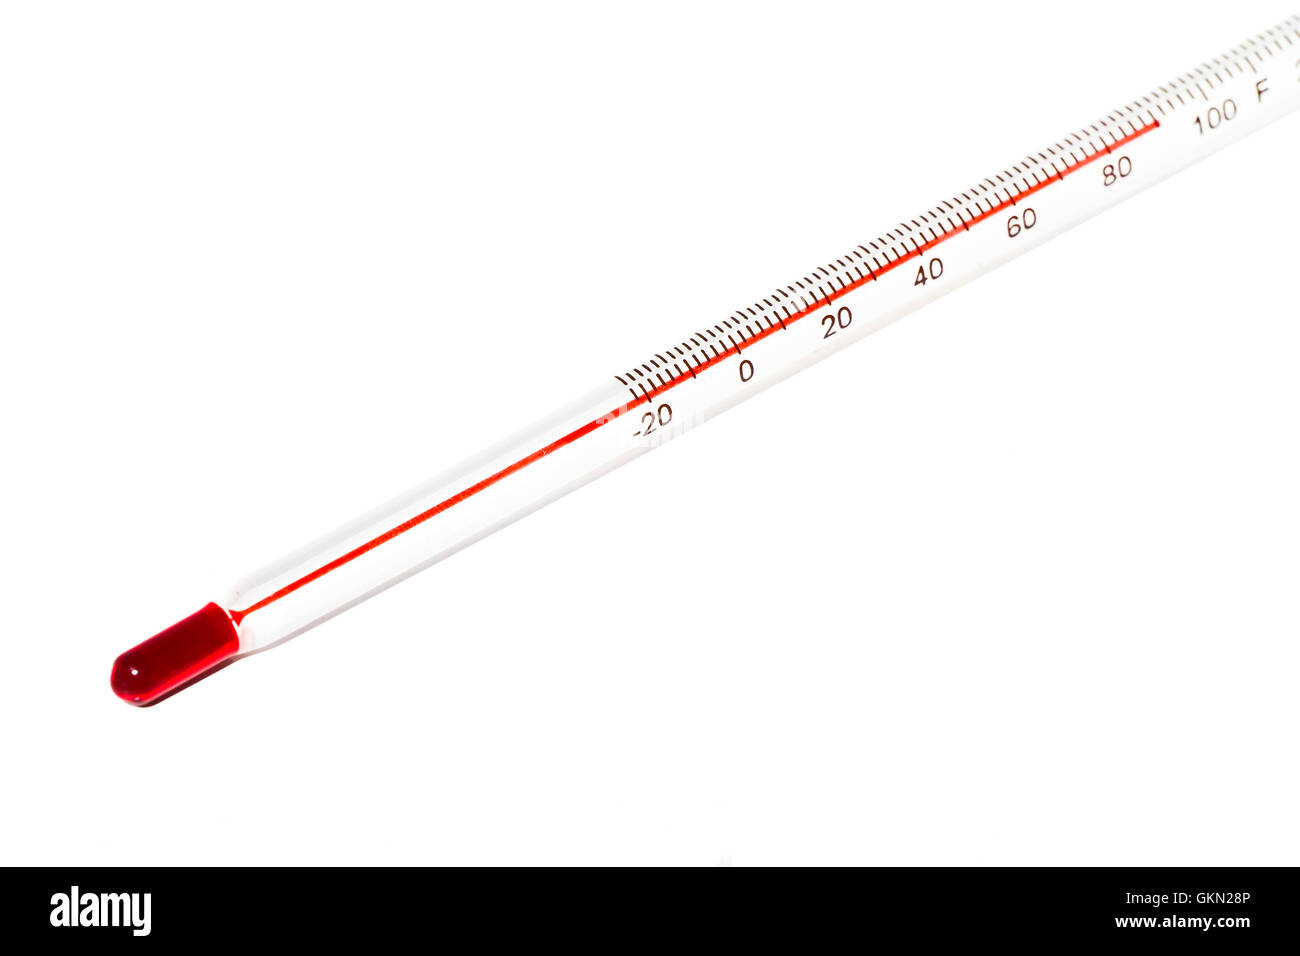 Thermometer with fahrenheit scale - Stock Image